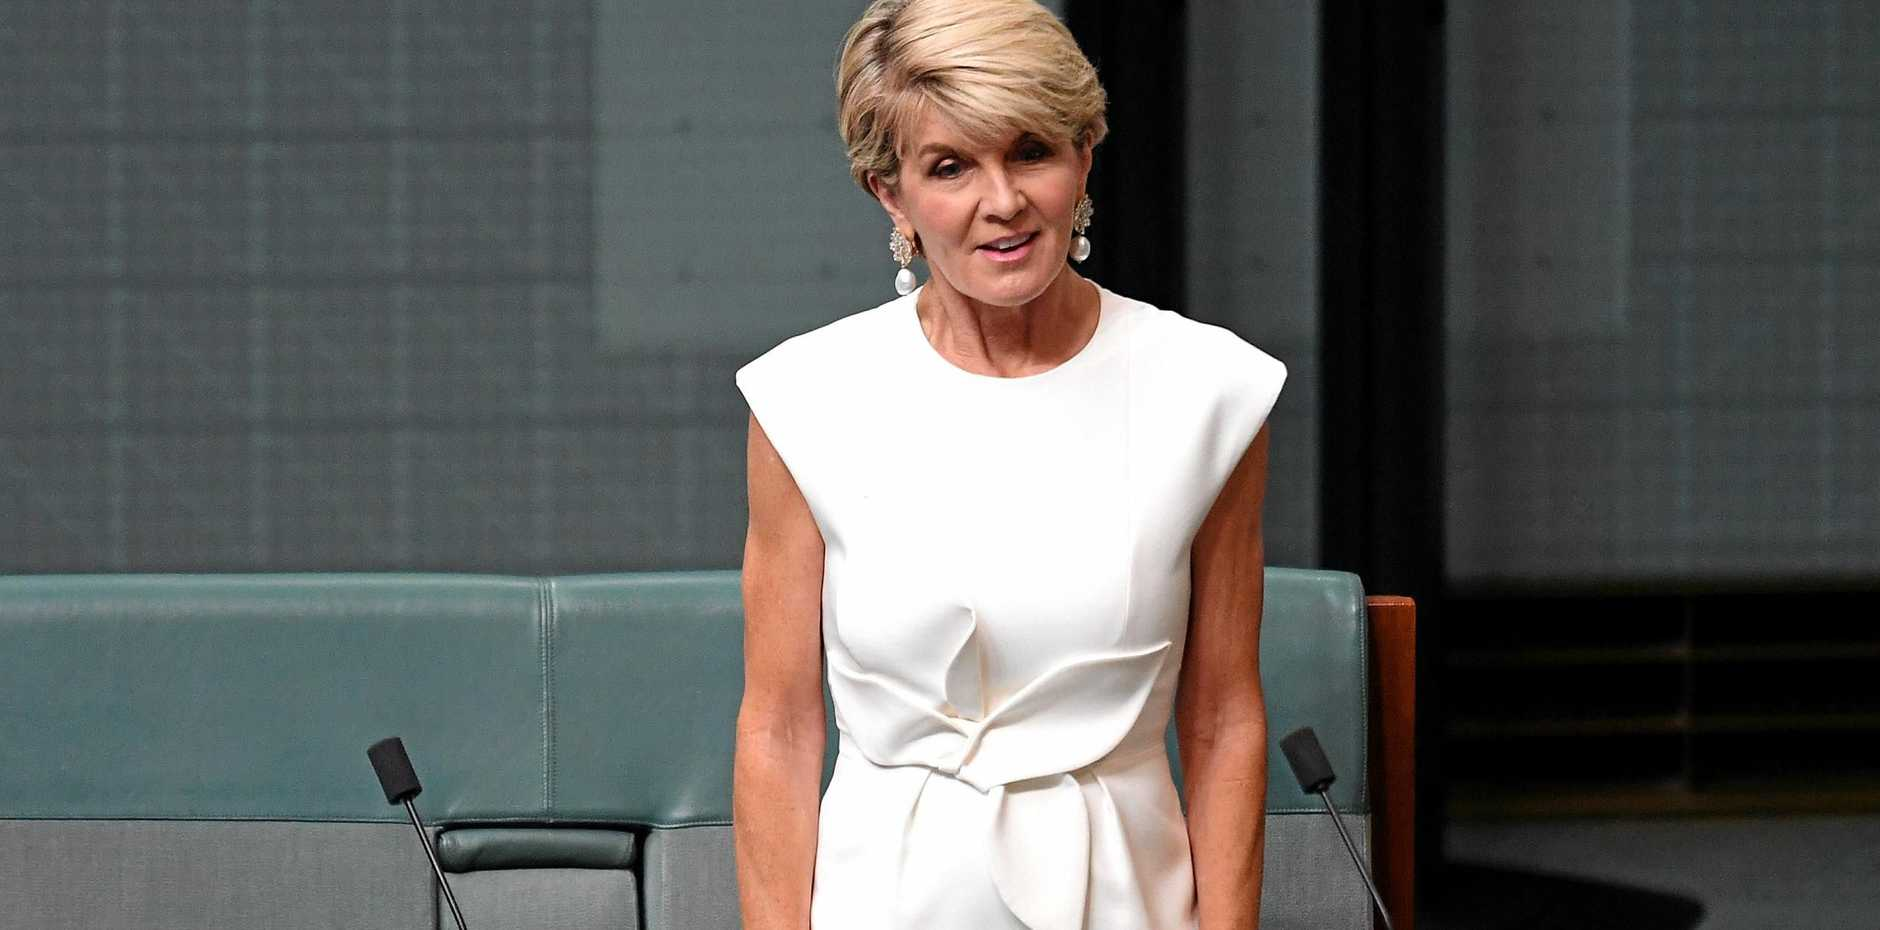 Member for Curtin Julie Bishop announces she will not be contesting the seat of Curtin in the upcoming 2019 Federal Election in the House of Representatives at Parliament House, in Canberra, Thursday, February 21, 2019. (AAP Image/Sam Mooy) NO ARCHIVING